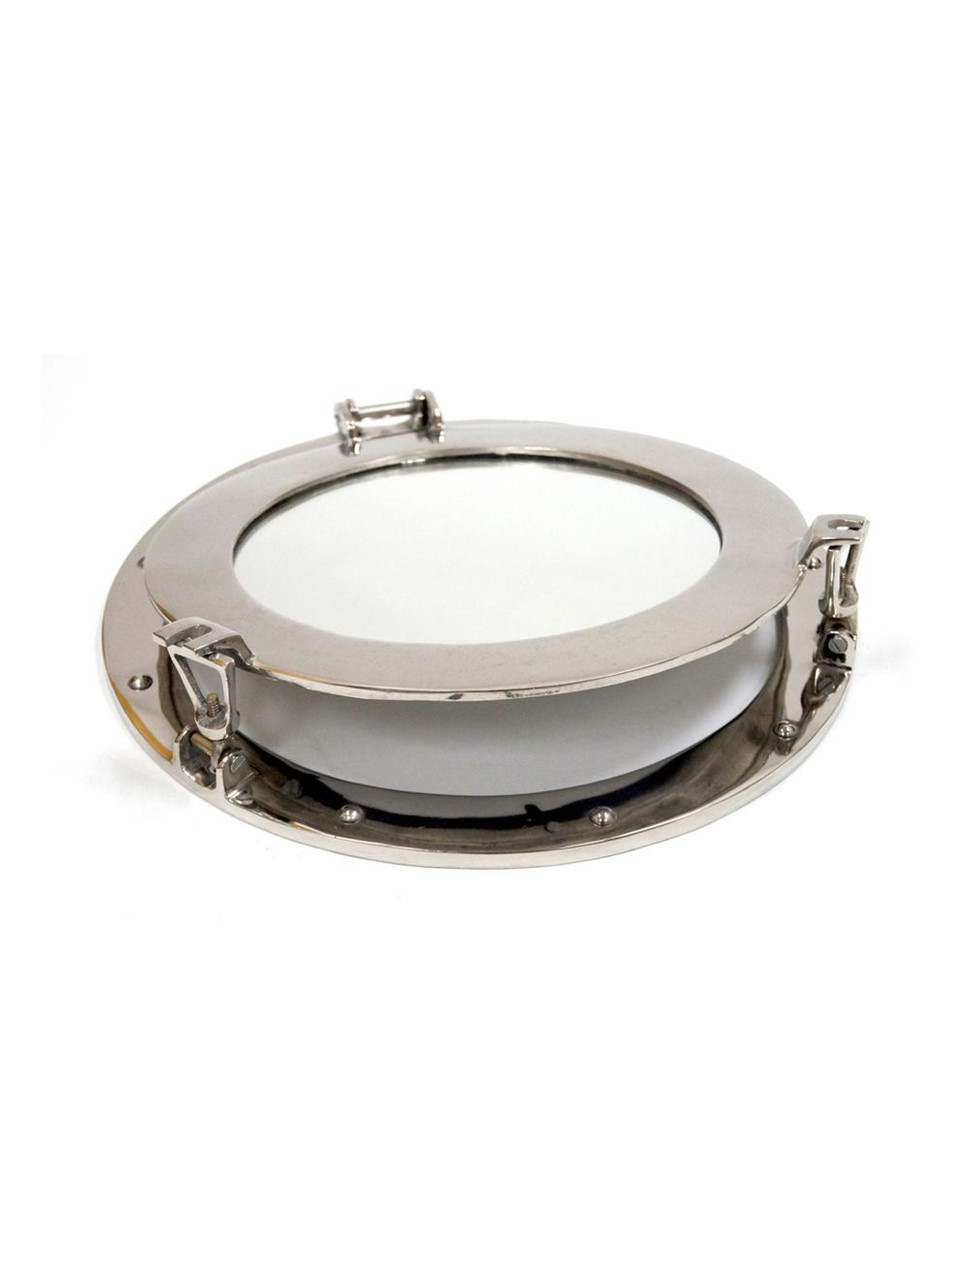 Aluminum Chrome Finish Ships Cabin Porthole Mirror